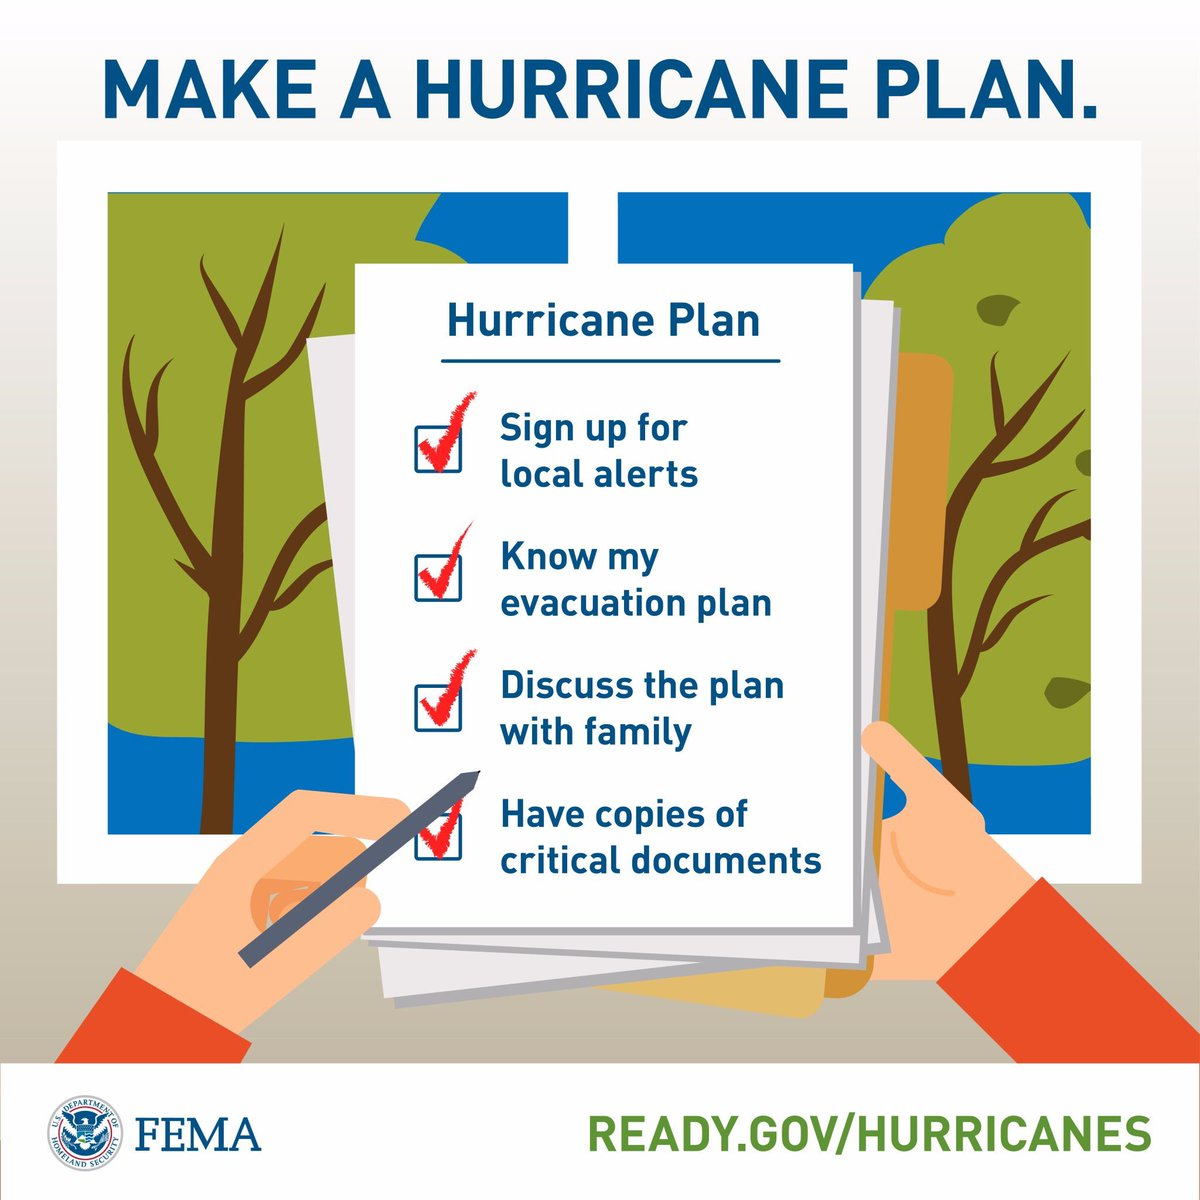 Hurricane and Flooding Preparedness: Books and Information